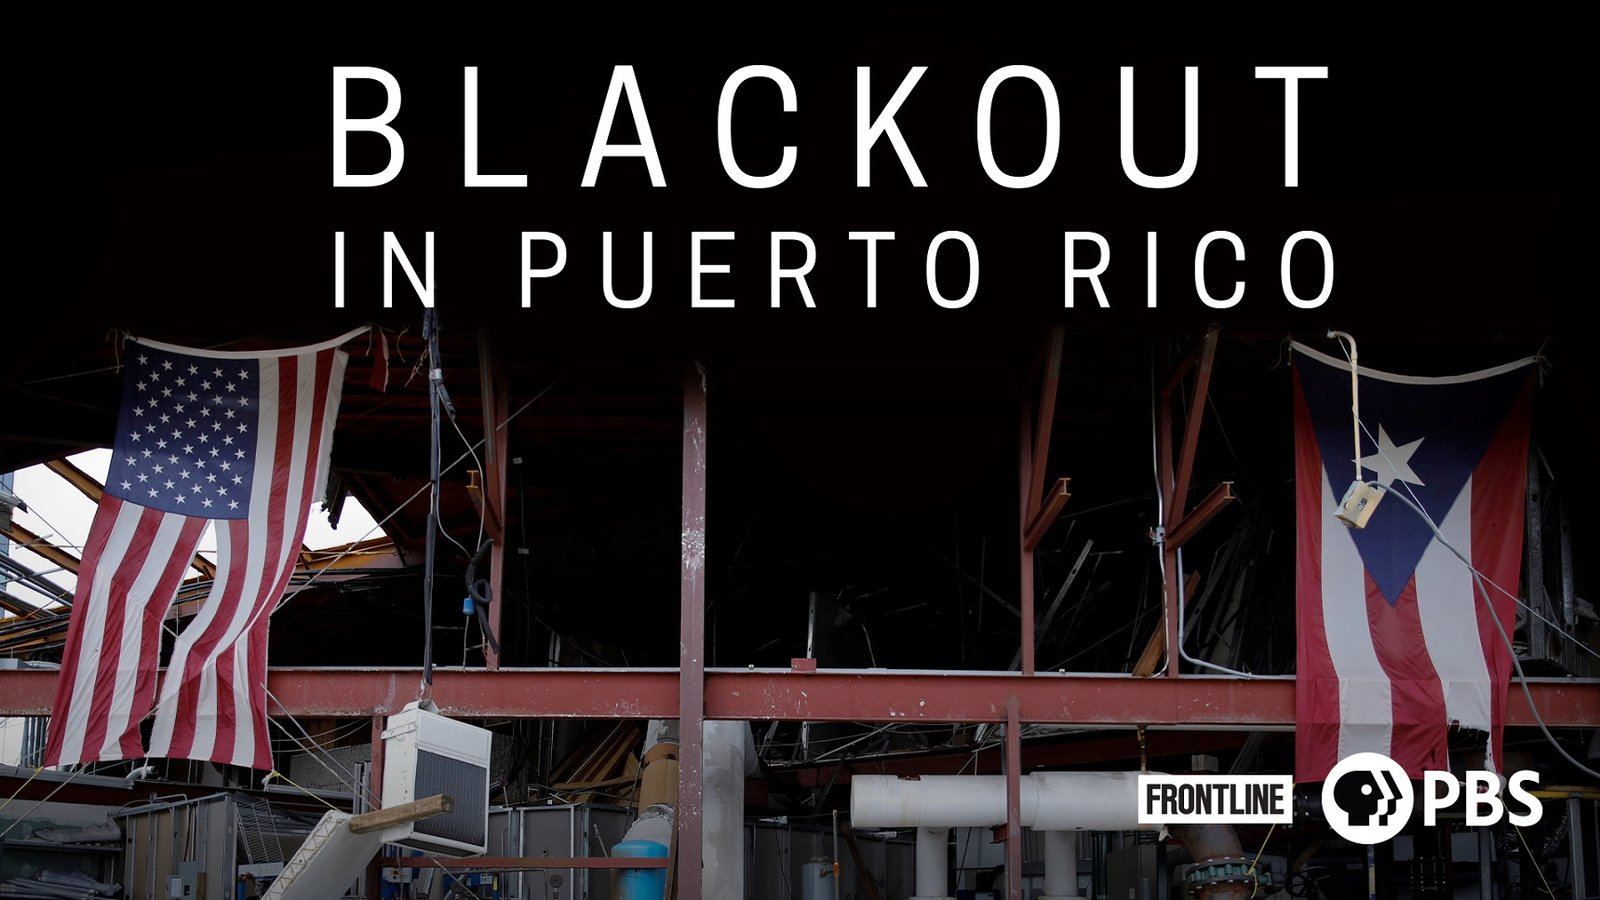 Frontline: Blackout in Puerto Rico